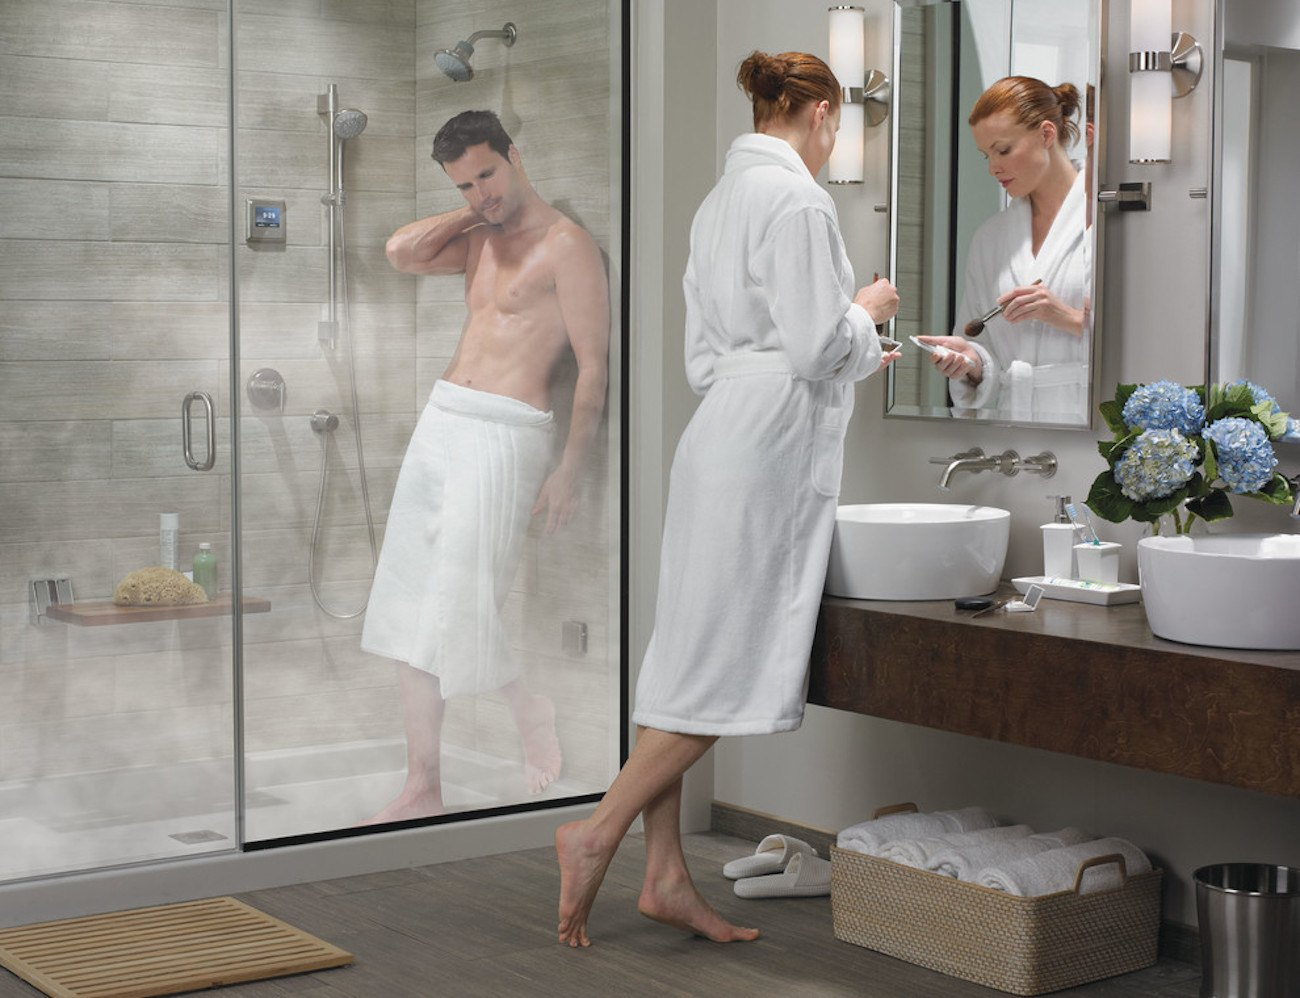 Steamist Total Sense Steam Spa